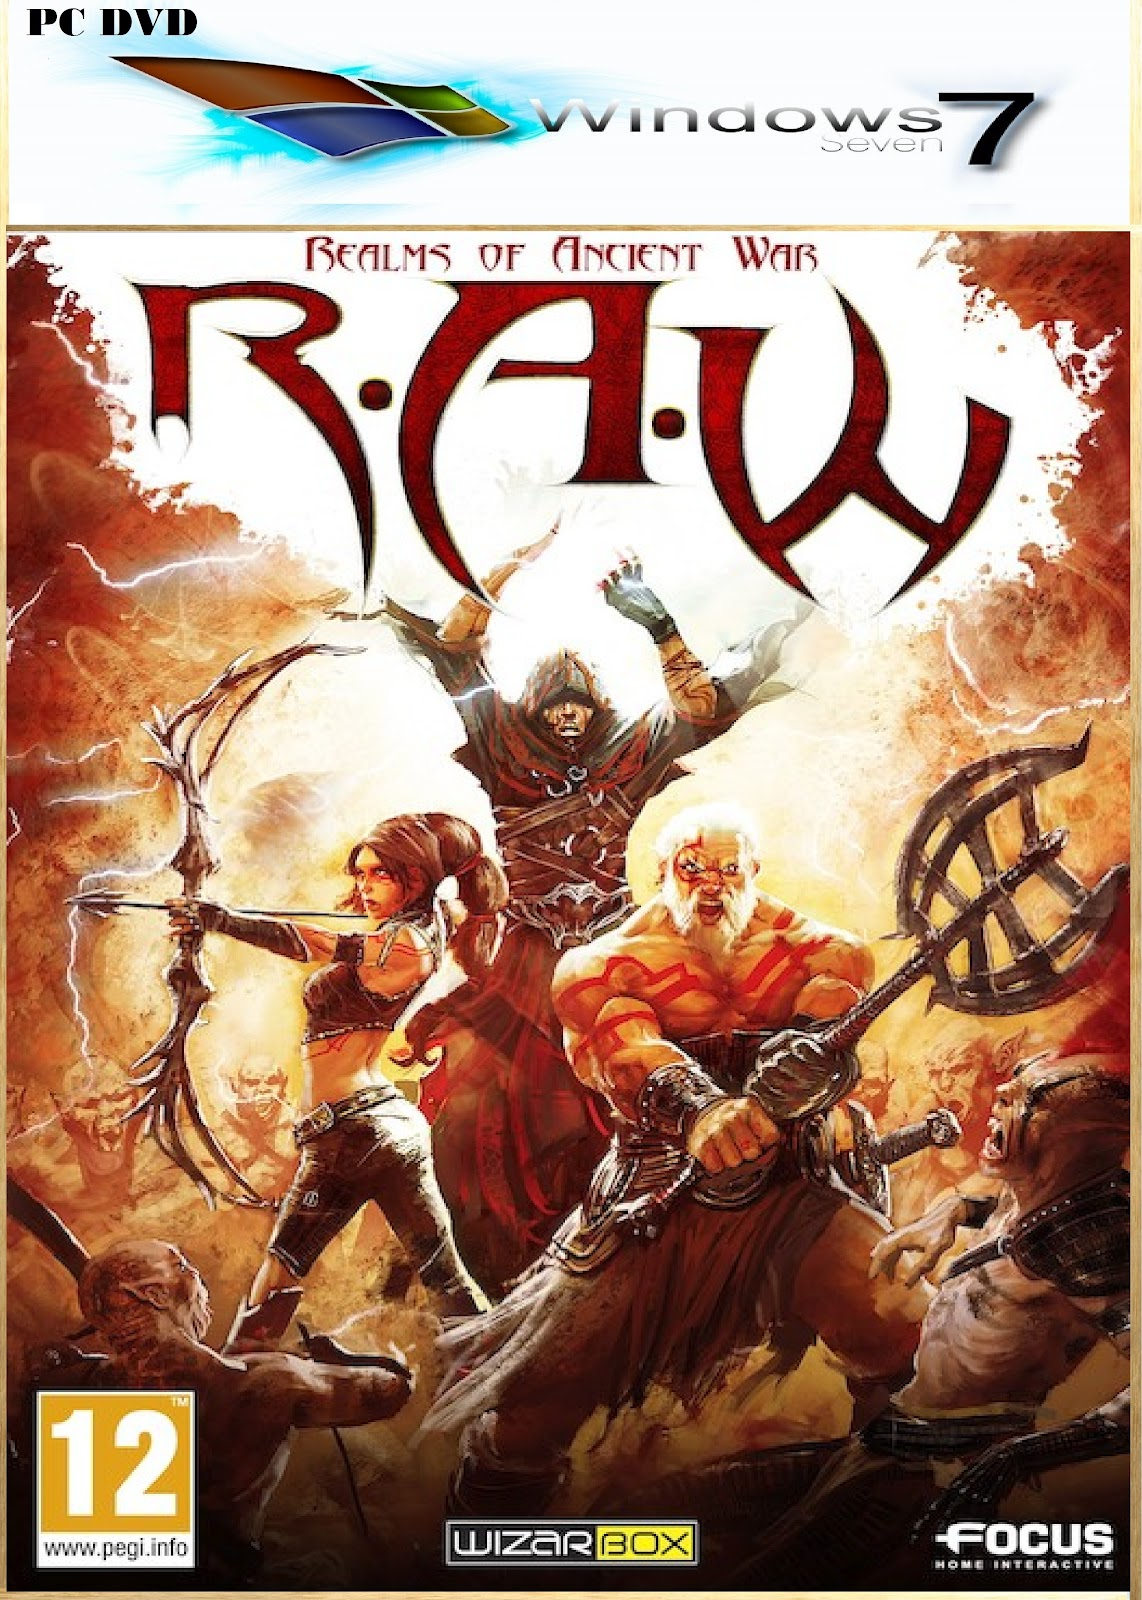 survive the realms of ancient war take control of a fearsome warrior